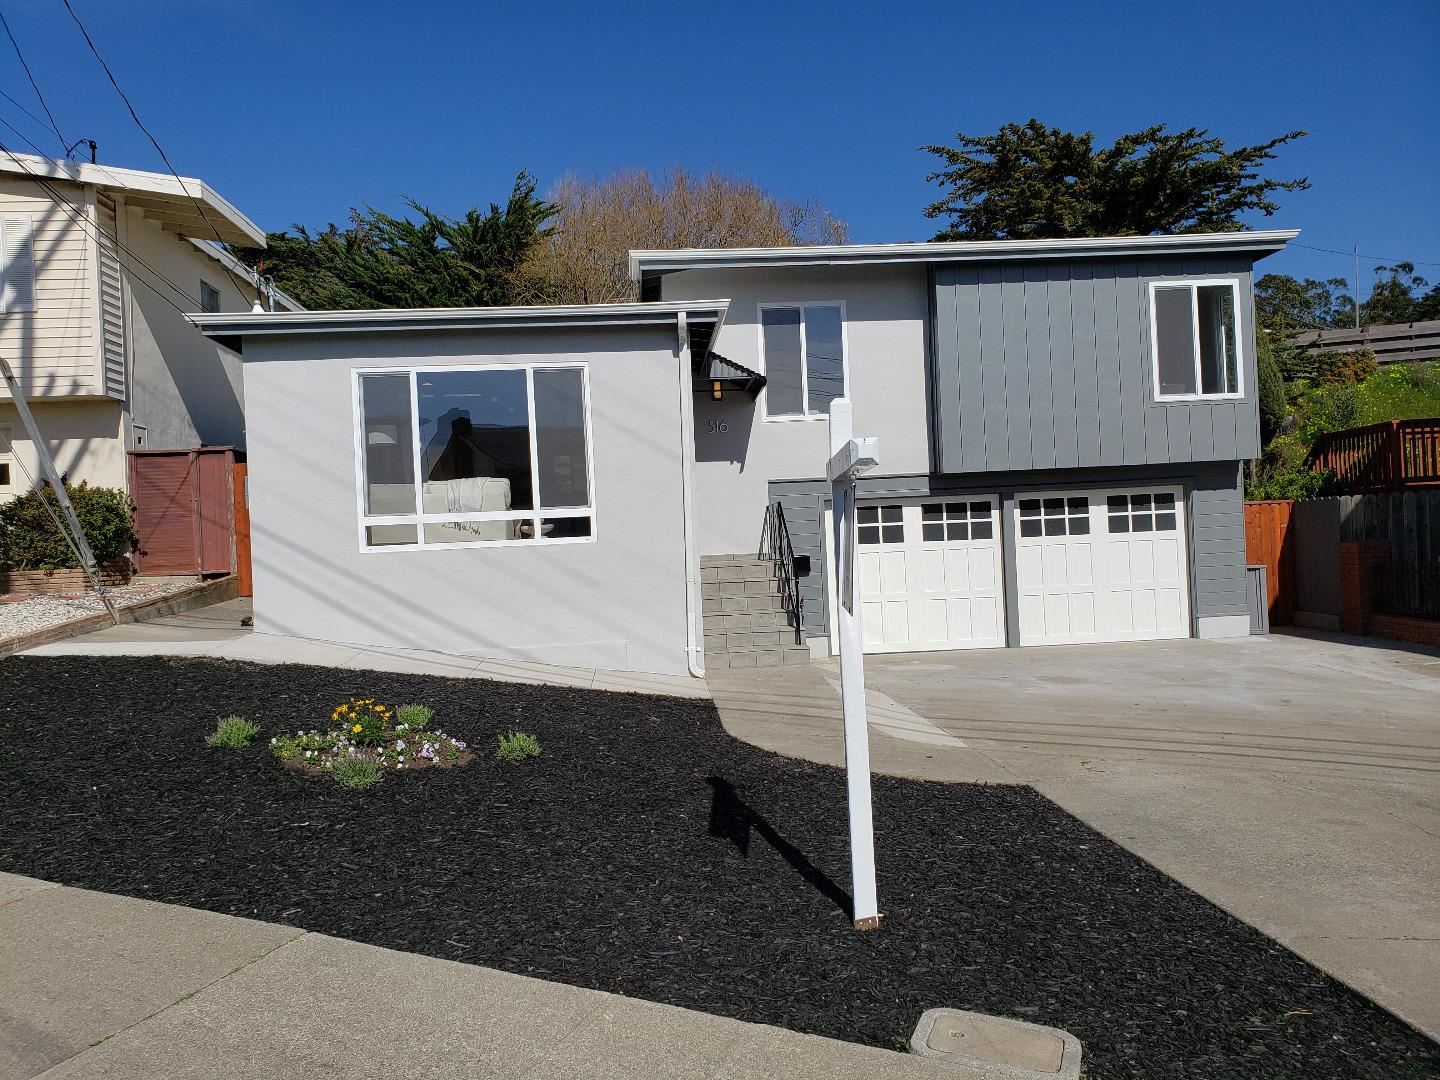 Photo for 516 Rocca AVE, SOUTH SAN FRANCISCO, CA 94080 (MLS # ML81782798)